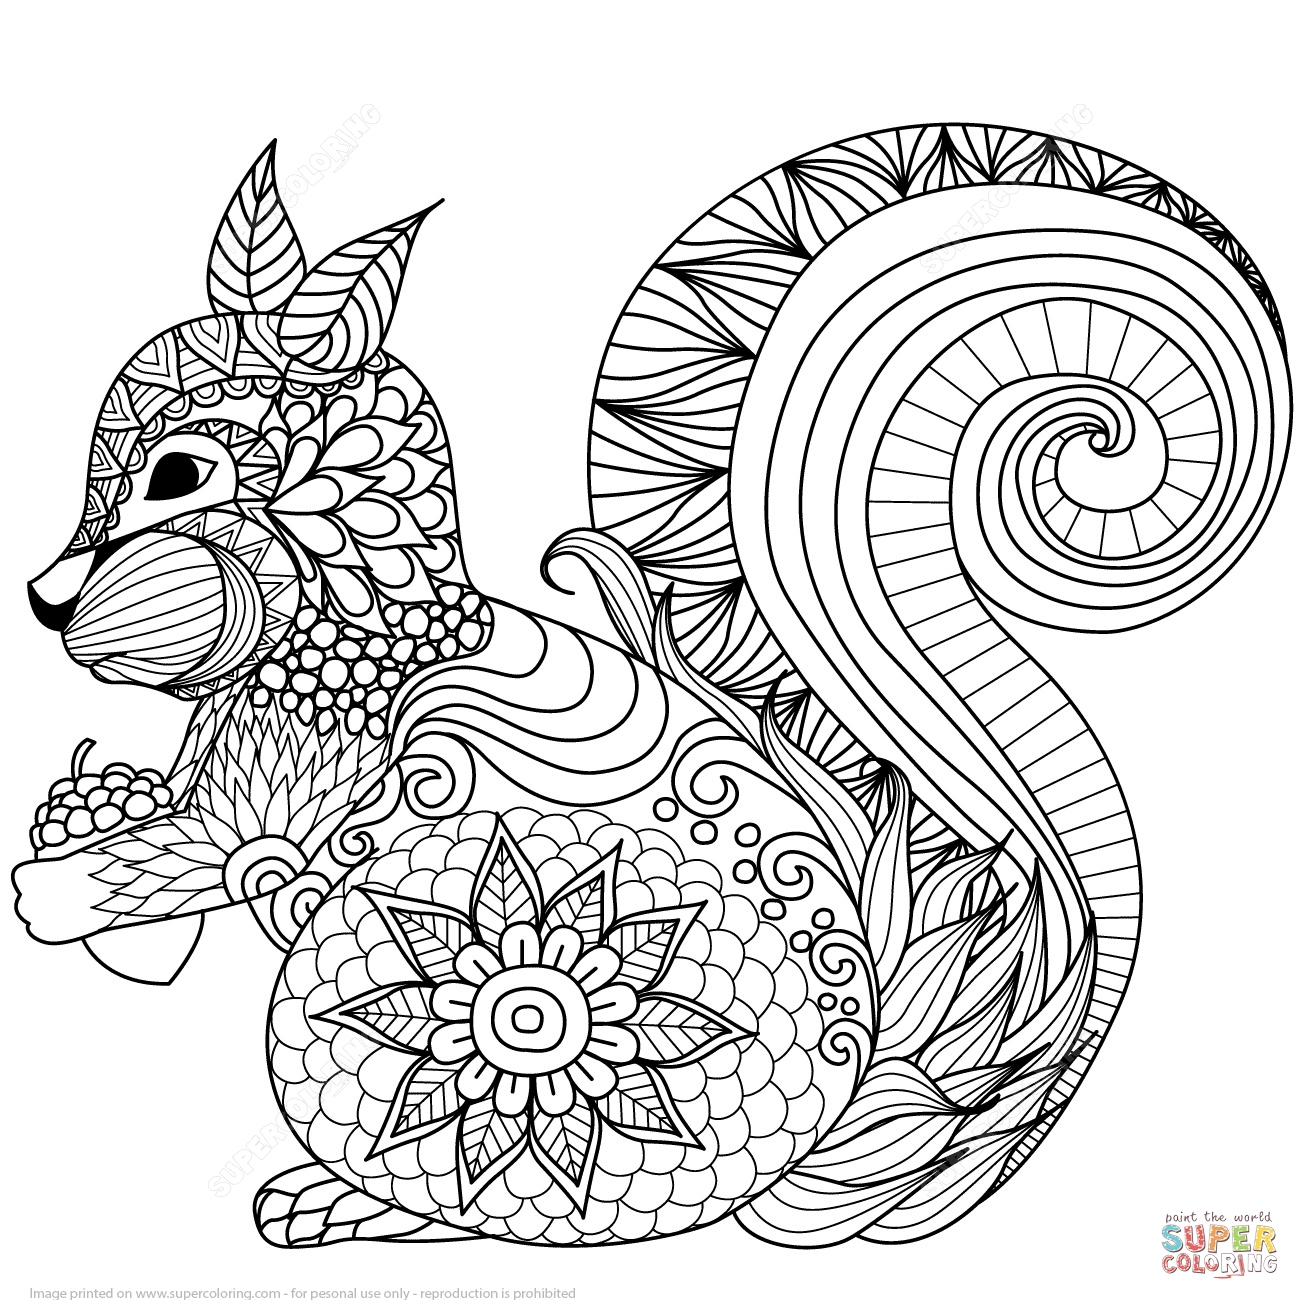 zentangle coloring pages free printable zentangle to download for free zentangle kids coloring pages free coloring pages printable zentangle